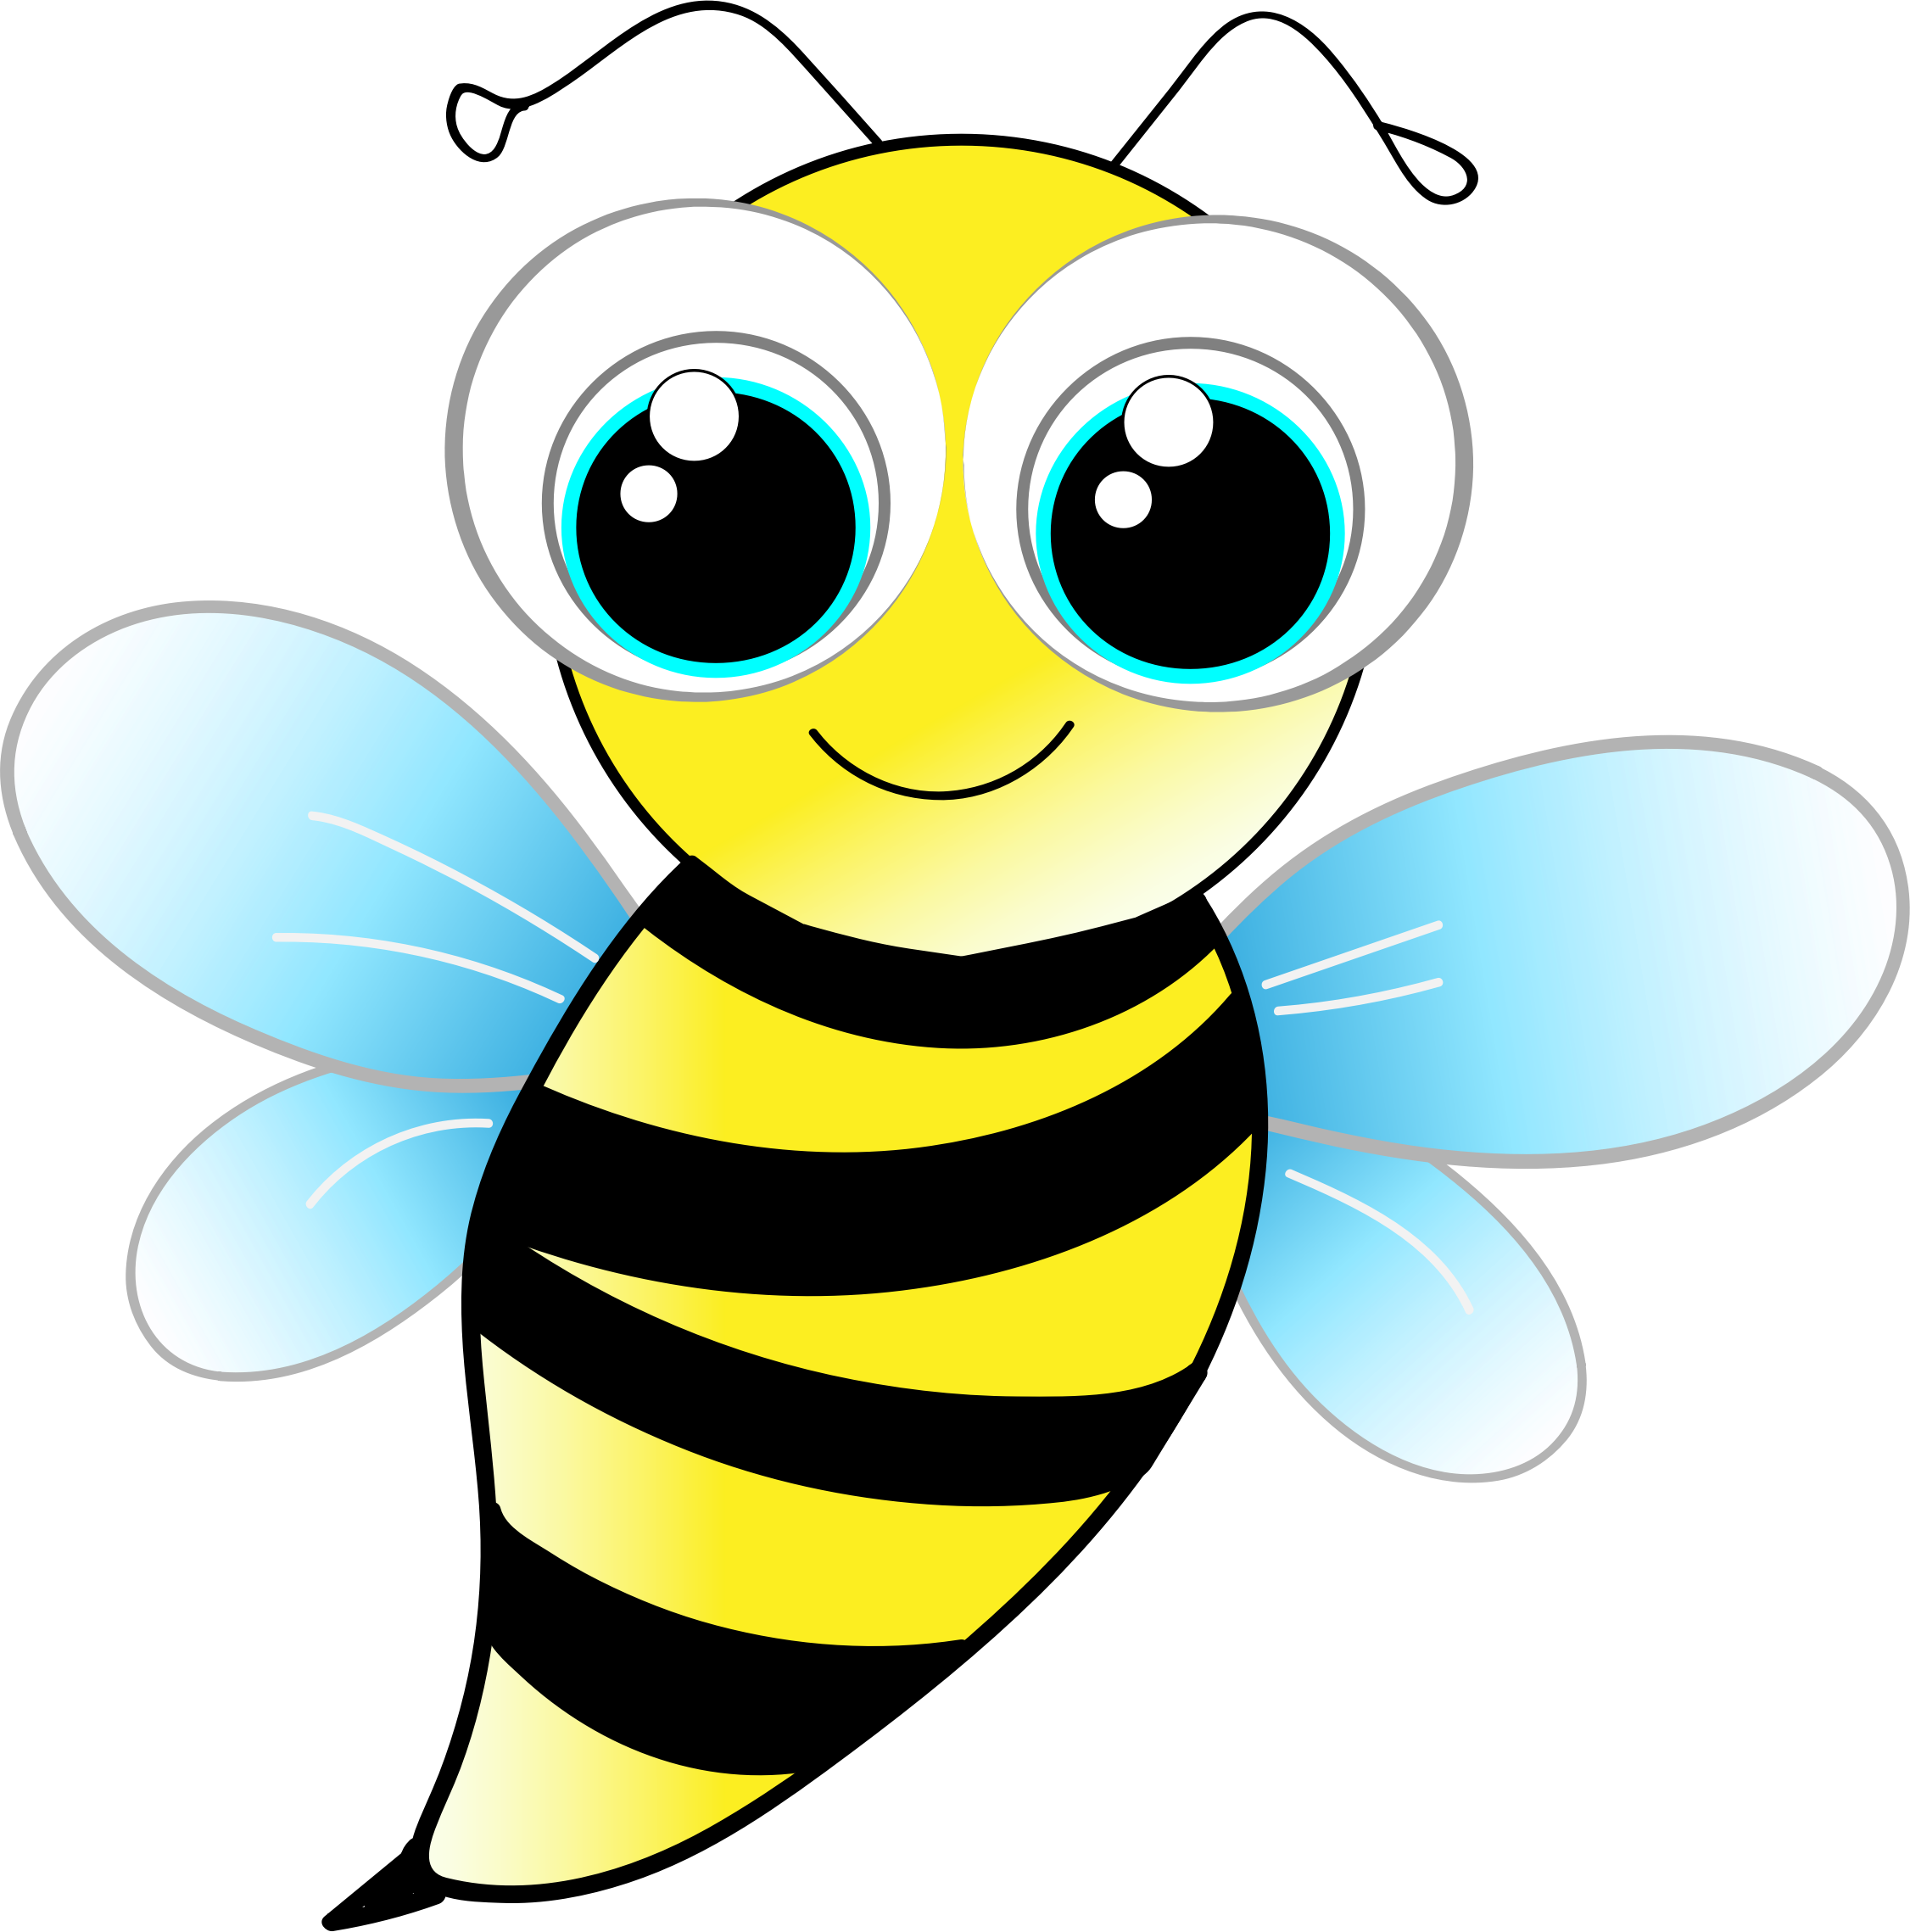 Bees clipart cute. Honey bee crafty inspiration